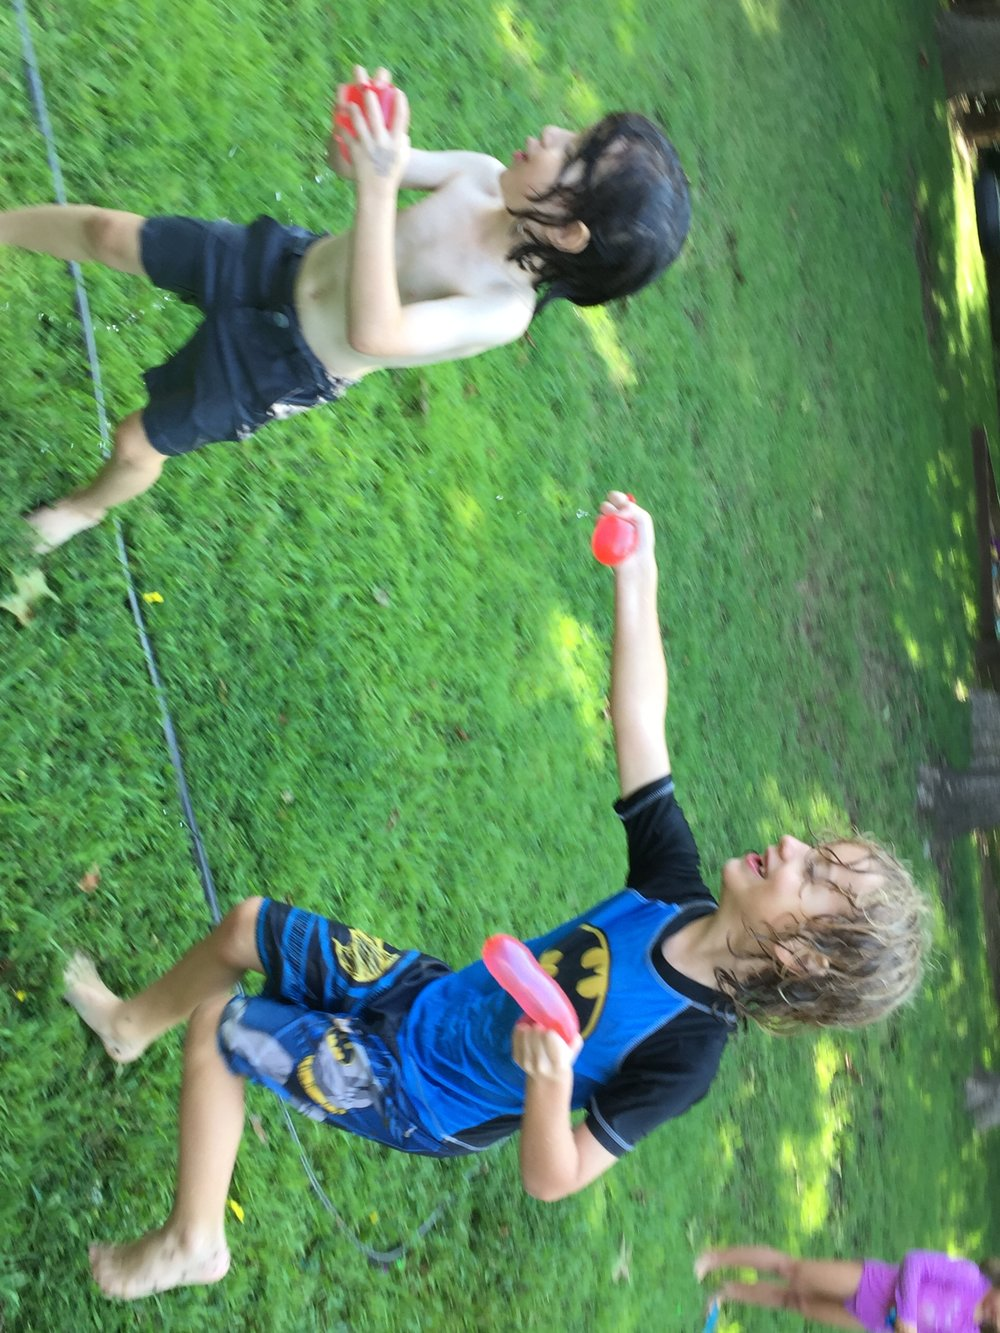 60 seconds to fill water balloons make us ALL happy =)